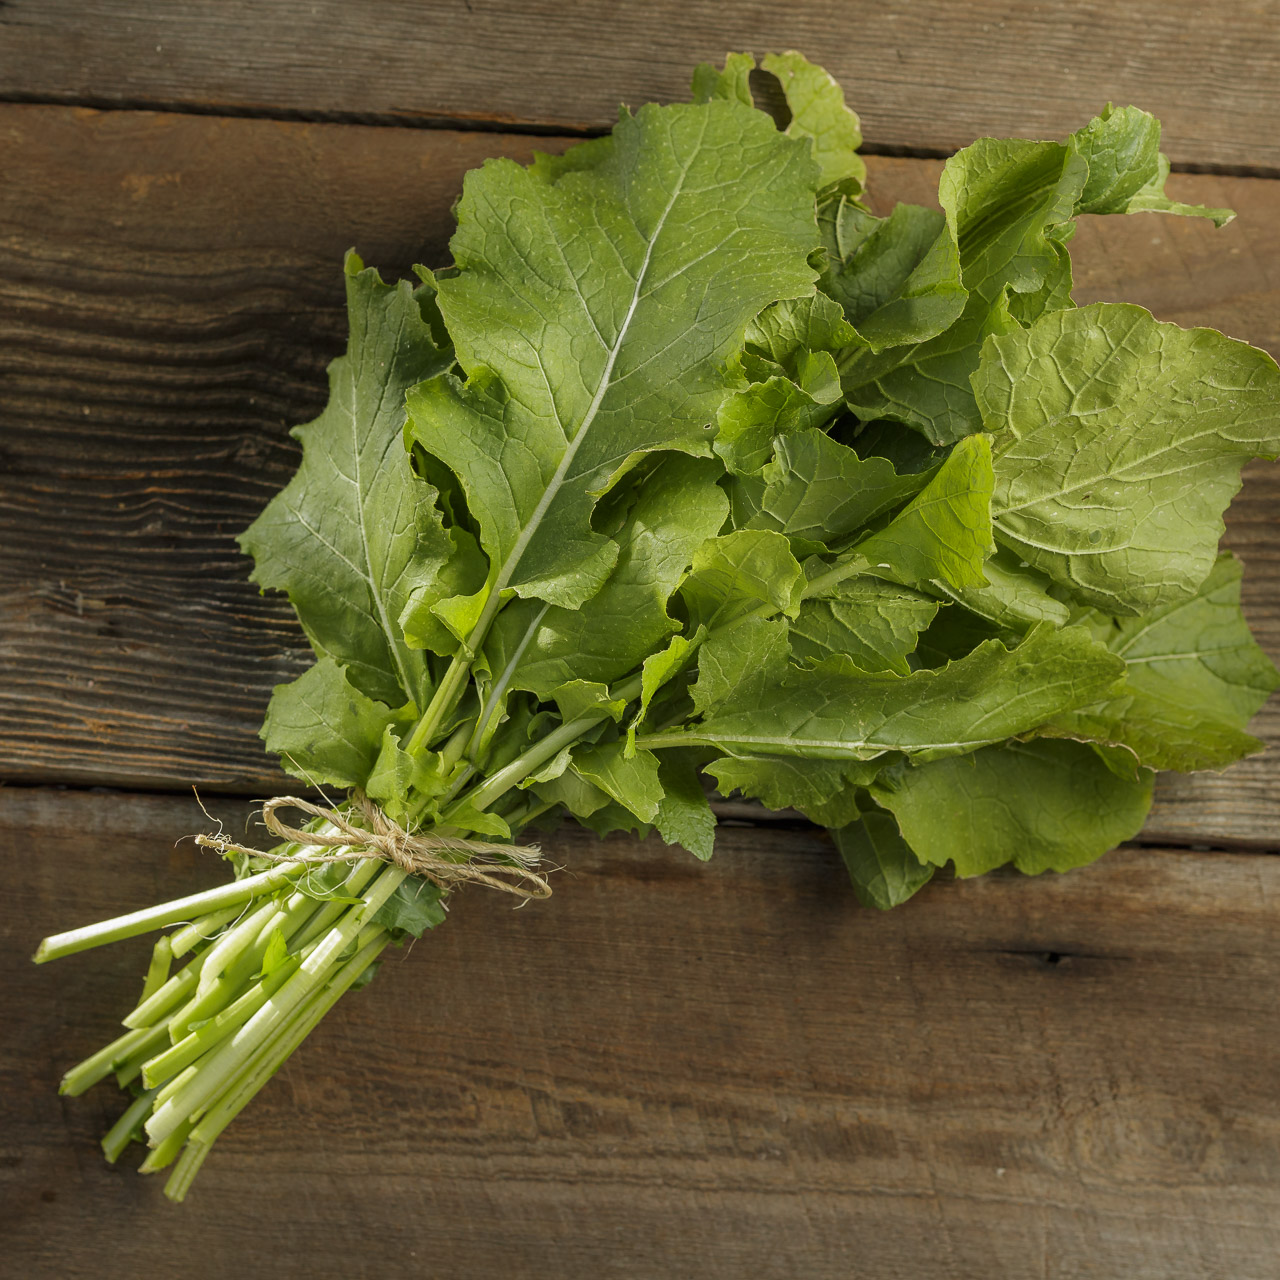 The FARM offers a variety of fall and winter greens